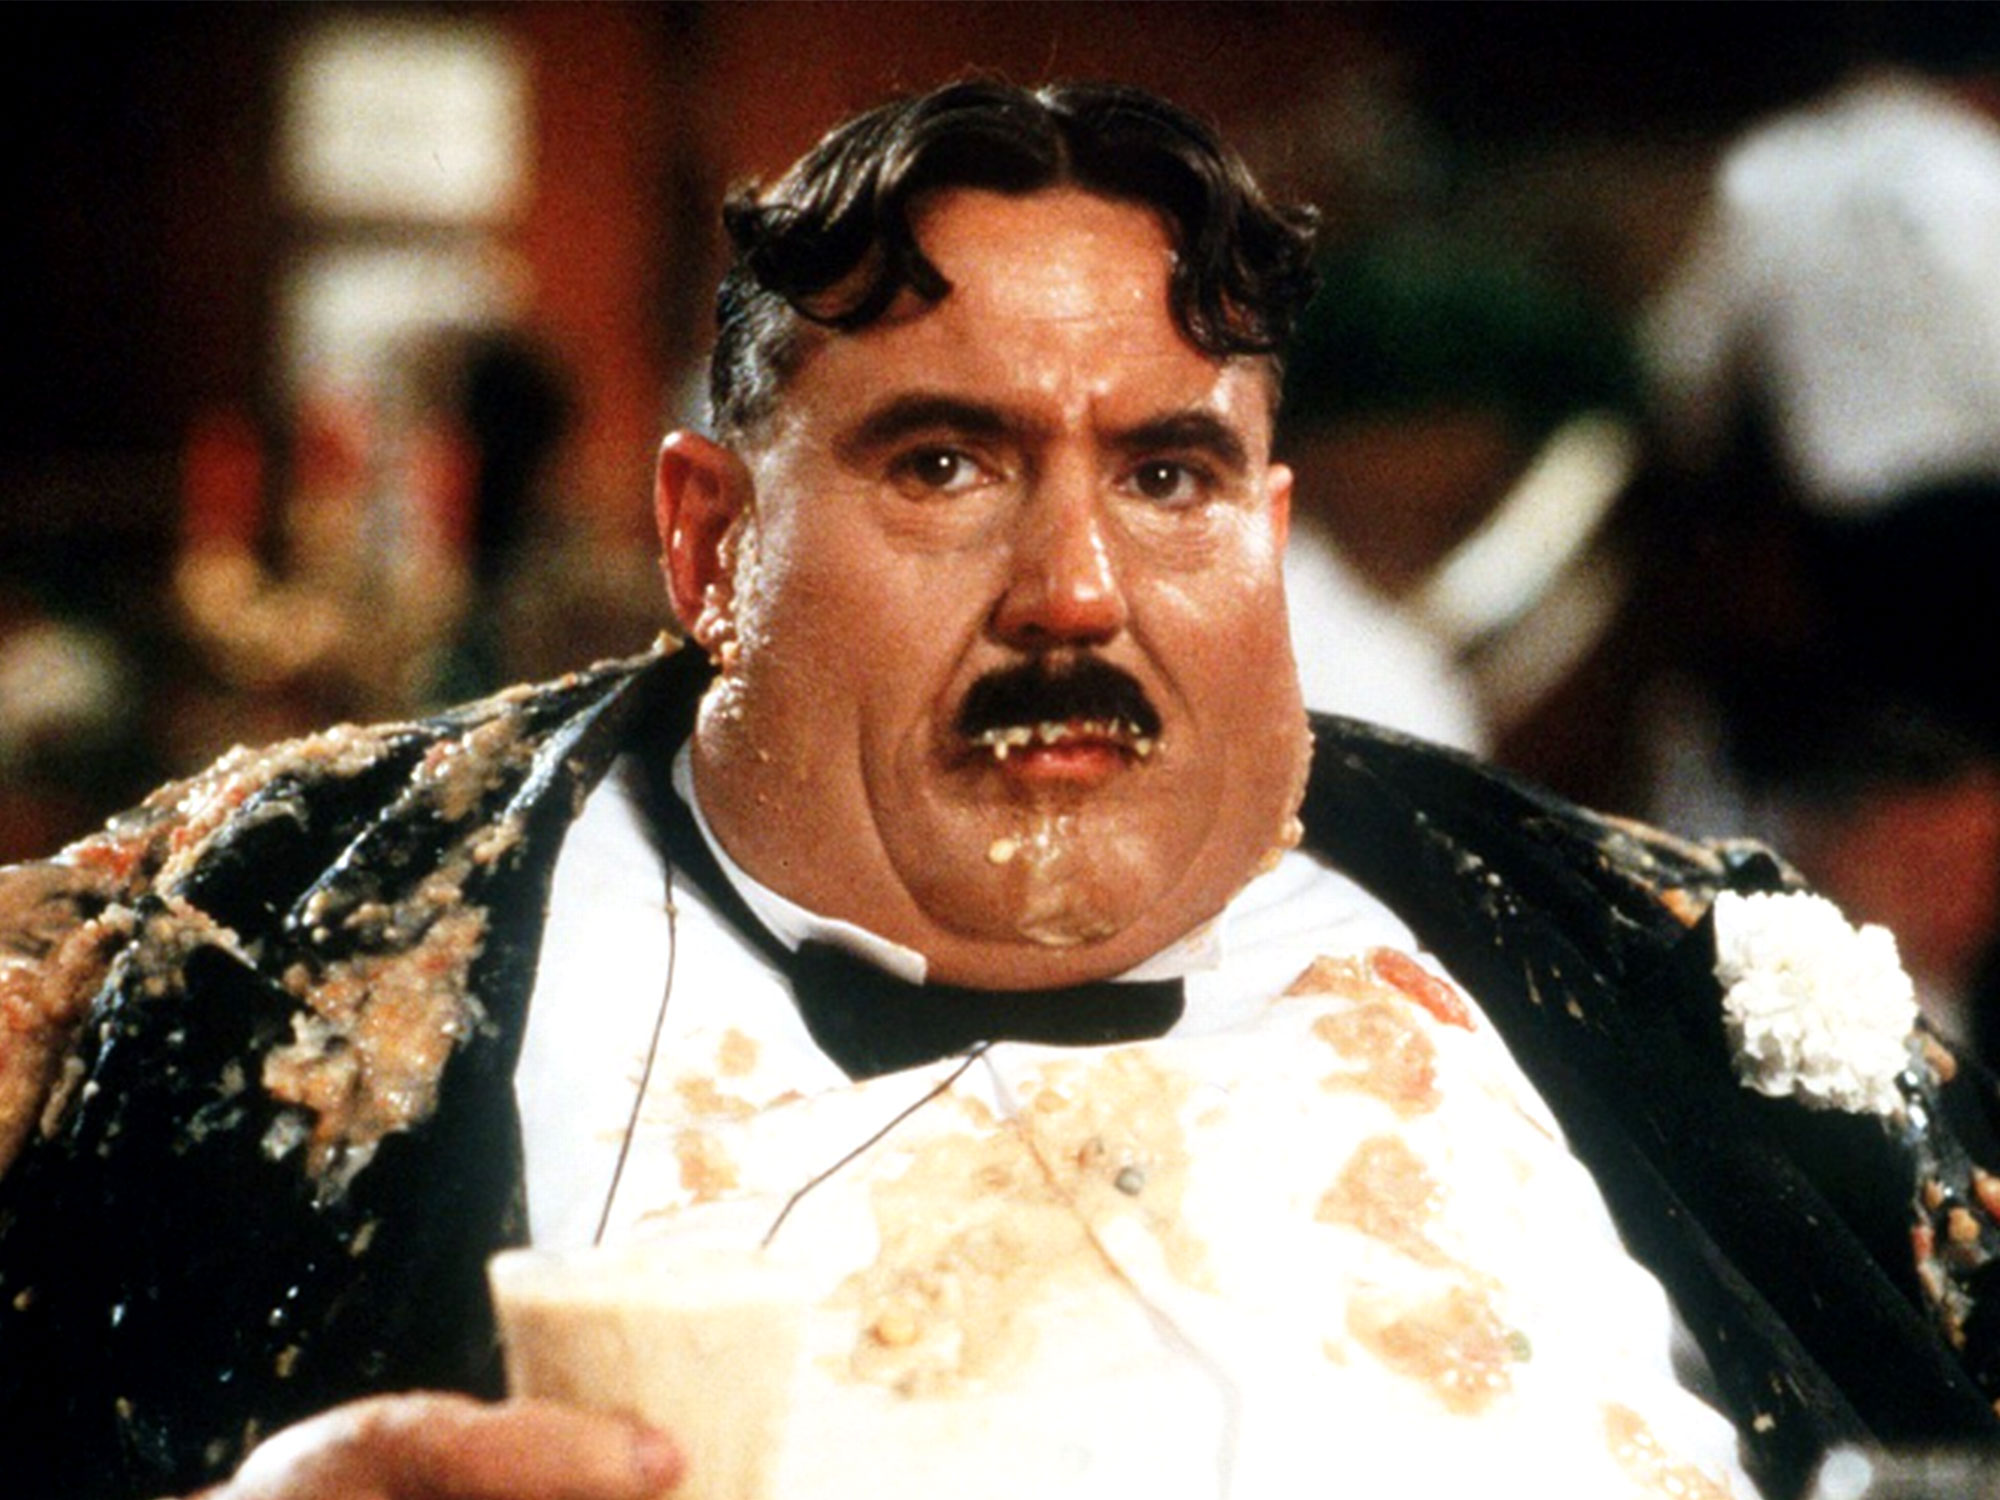 Terry Jones as Mr Creosote in Monty Python's The Meaning of Life